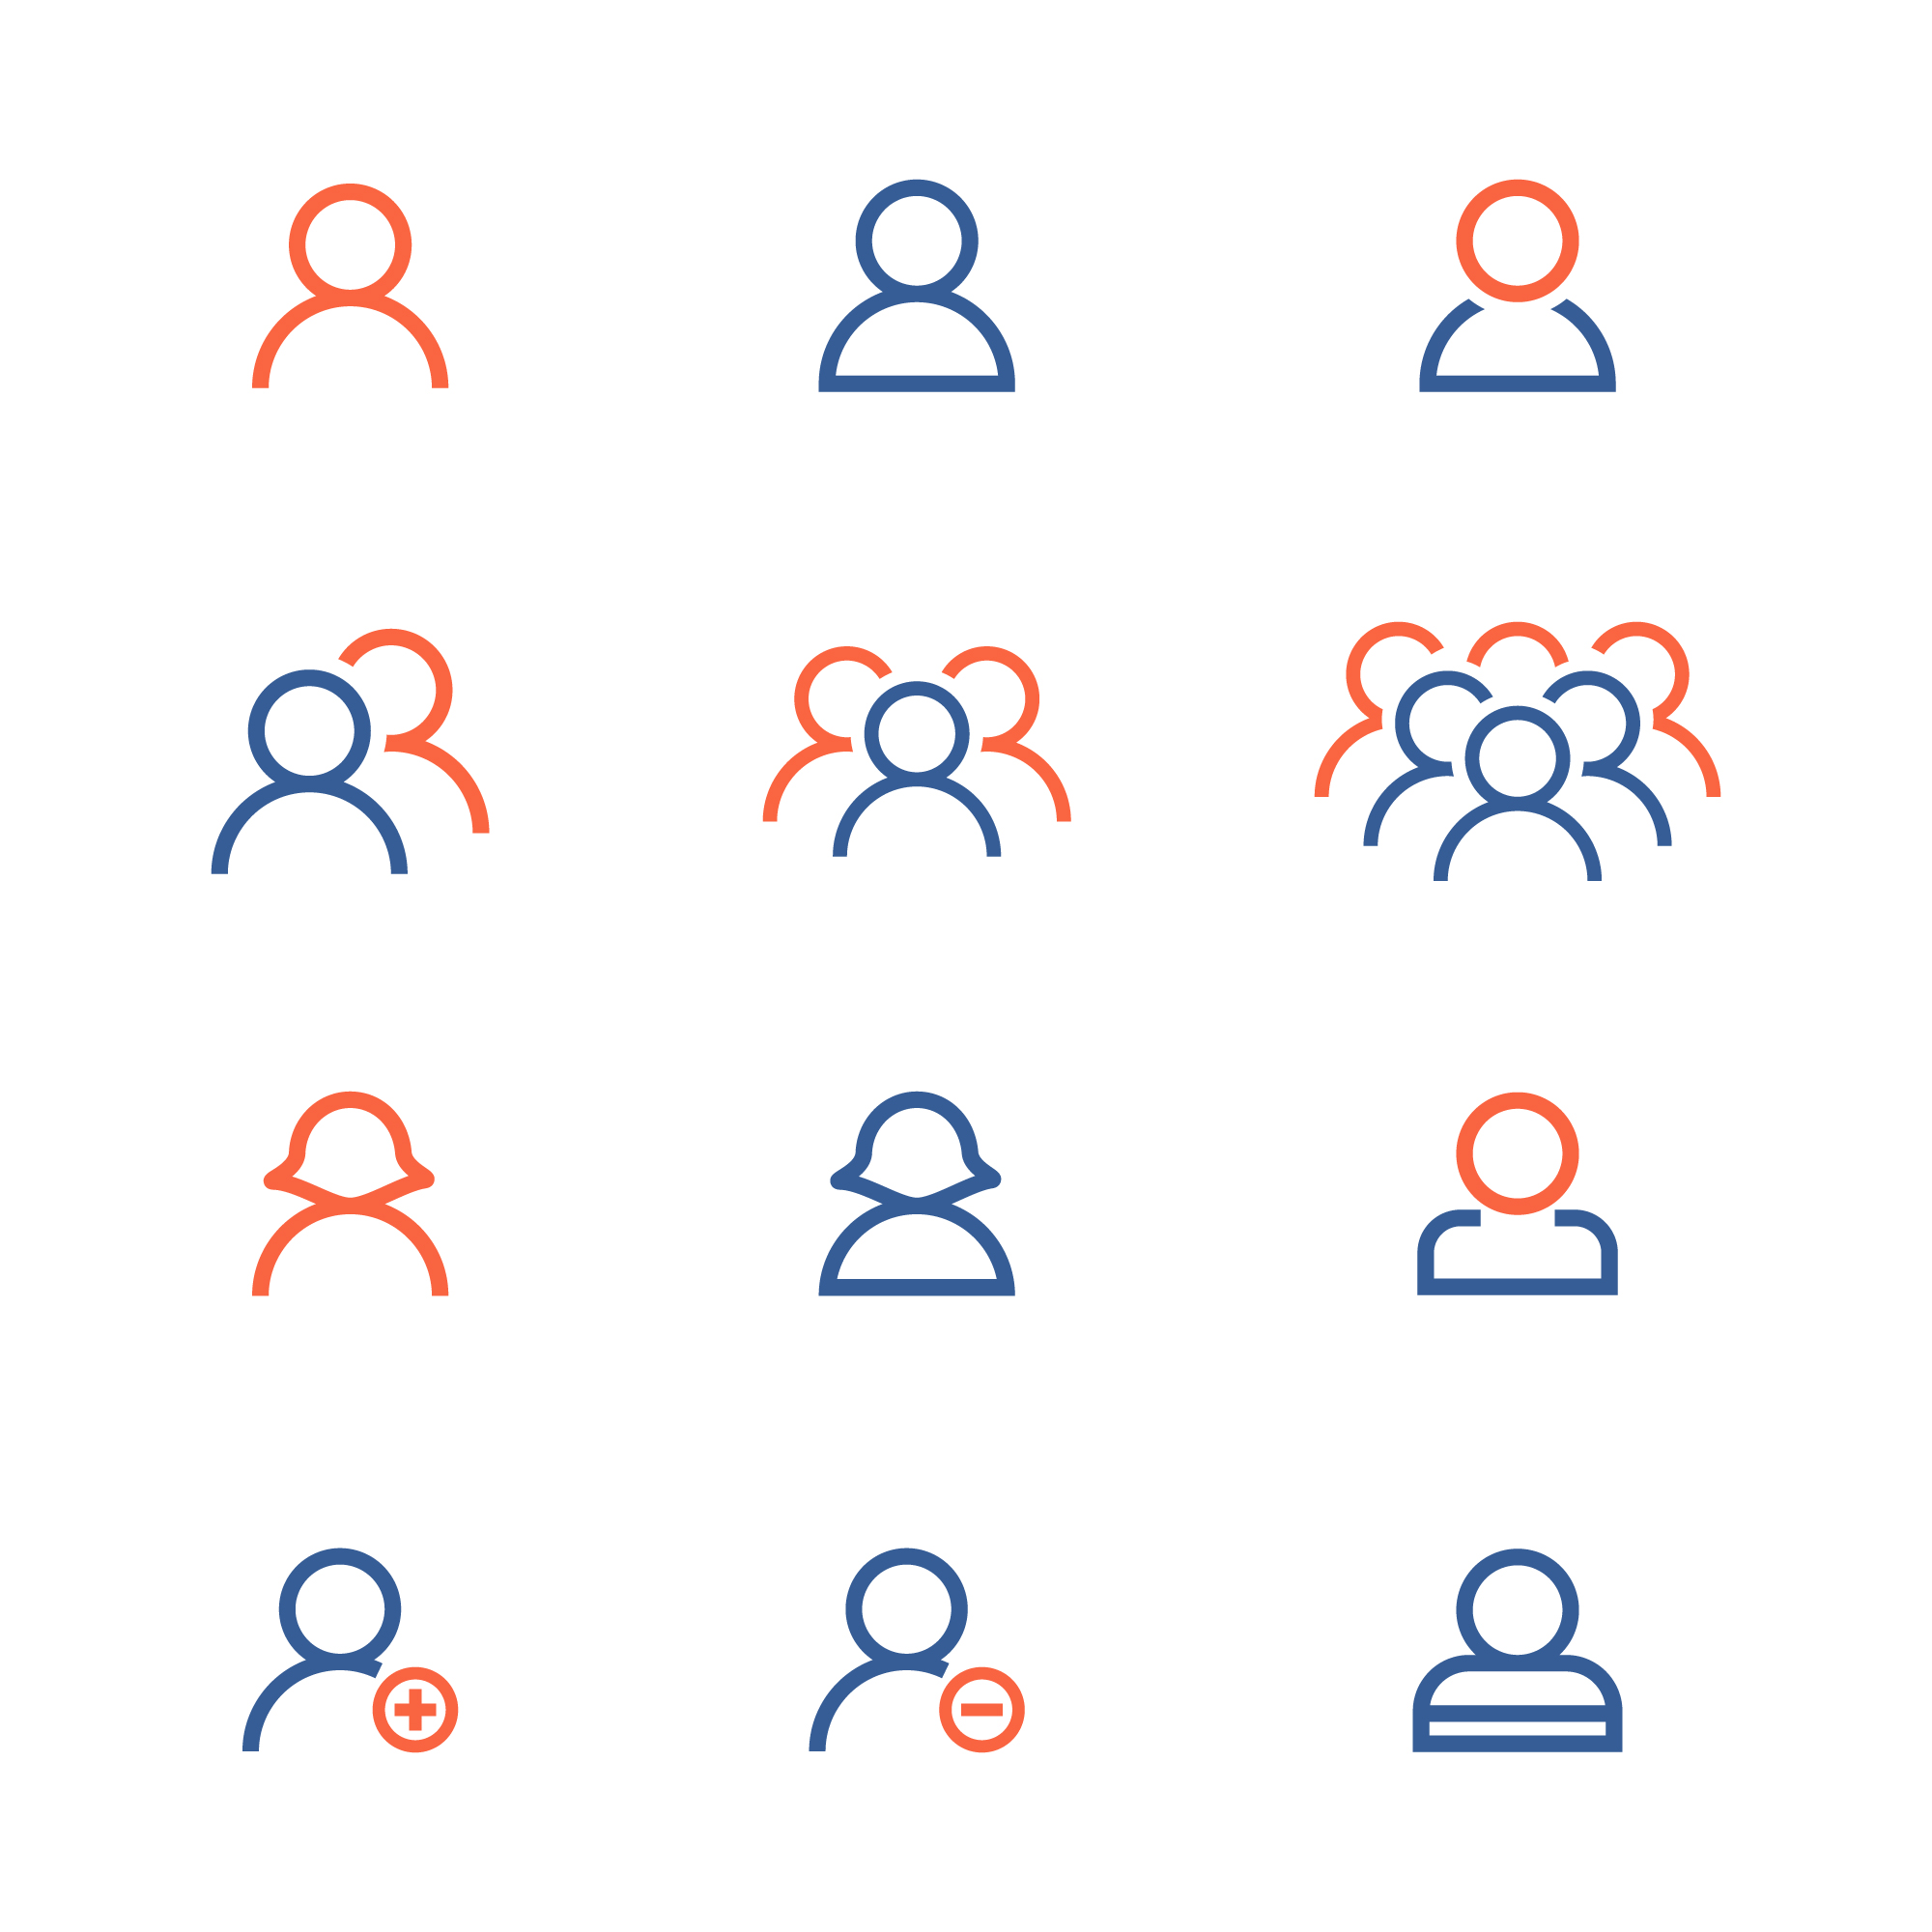 People icon collection